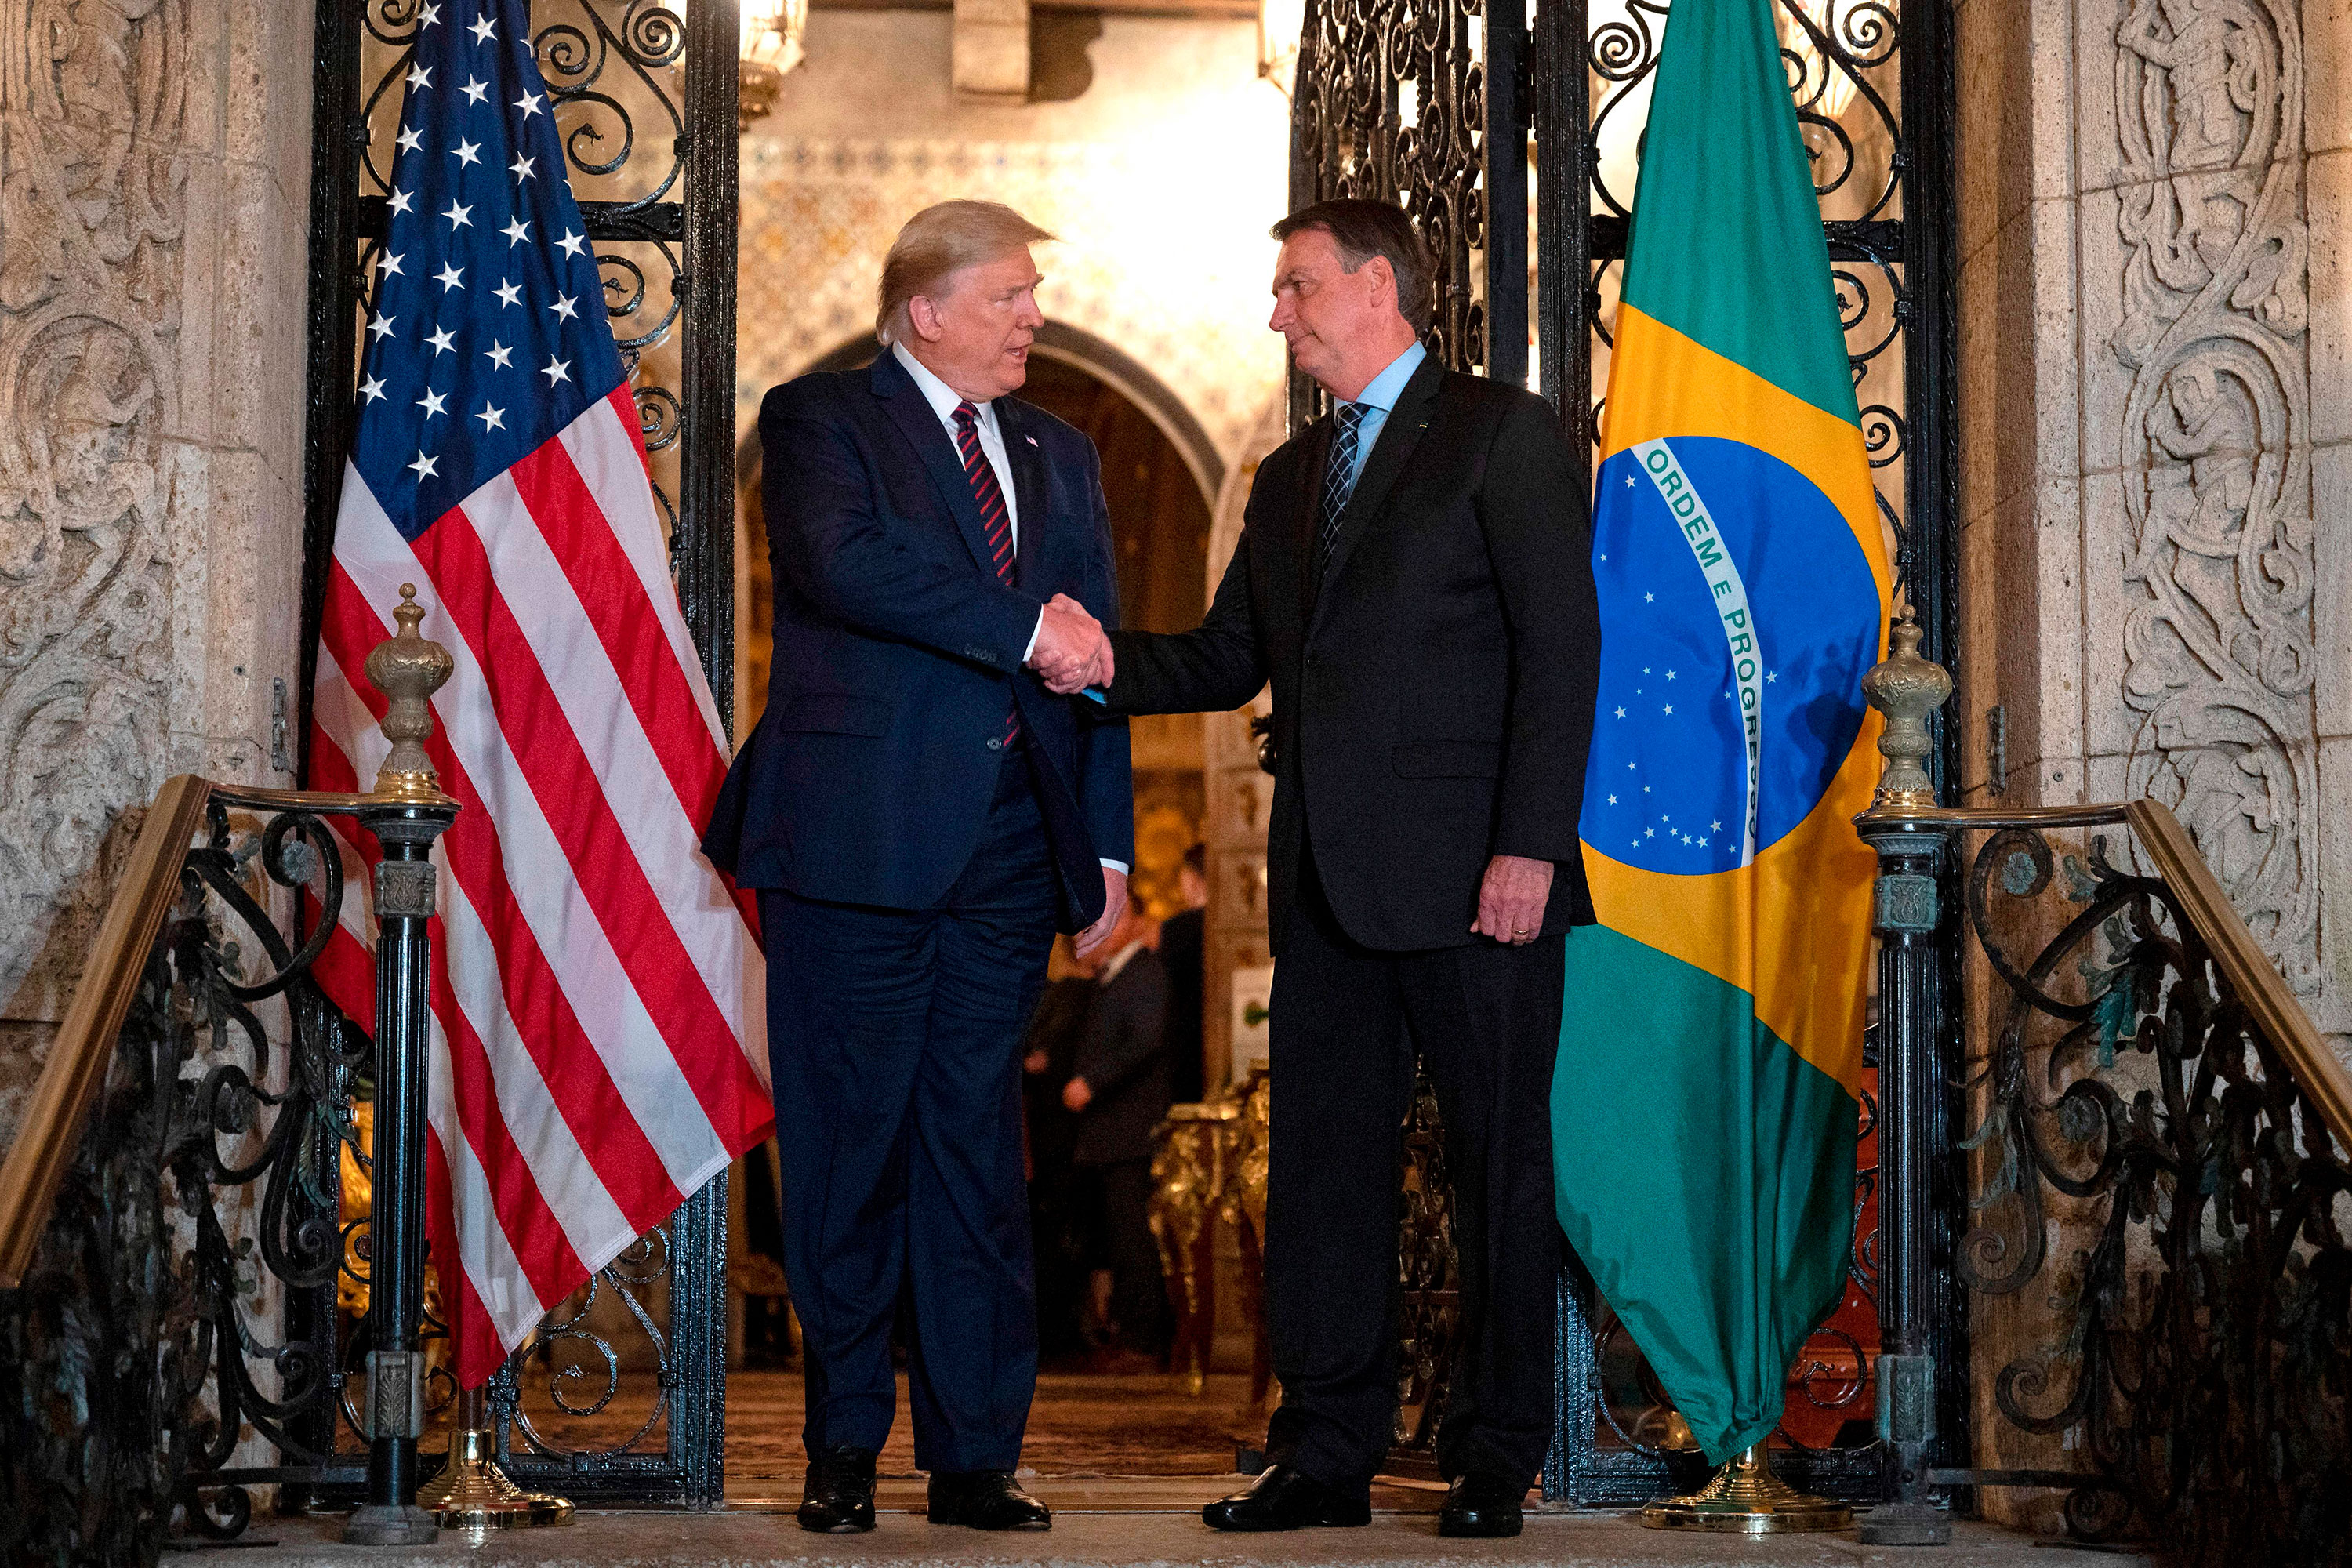 President Donald Trump shakes hands with Brazilian President Jair Bolsonaro during a diner at Mar-a-Lago in Palm Beach, Florida, on Saturday, March 7.